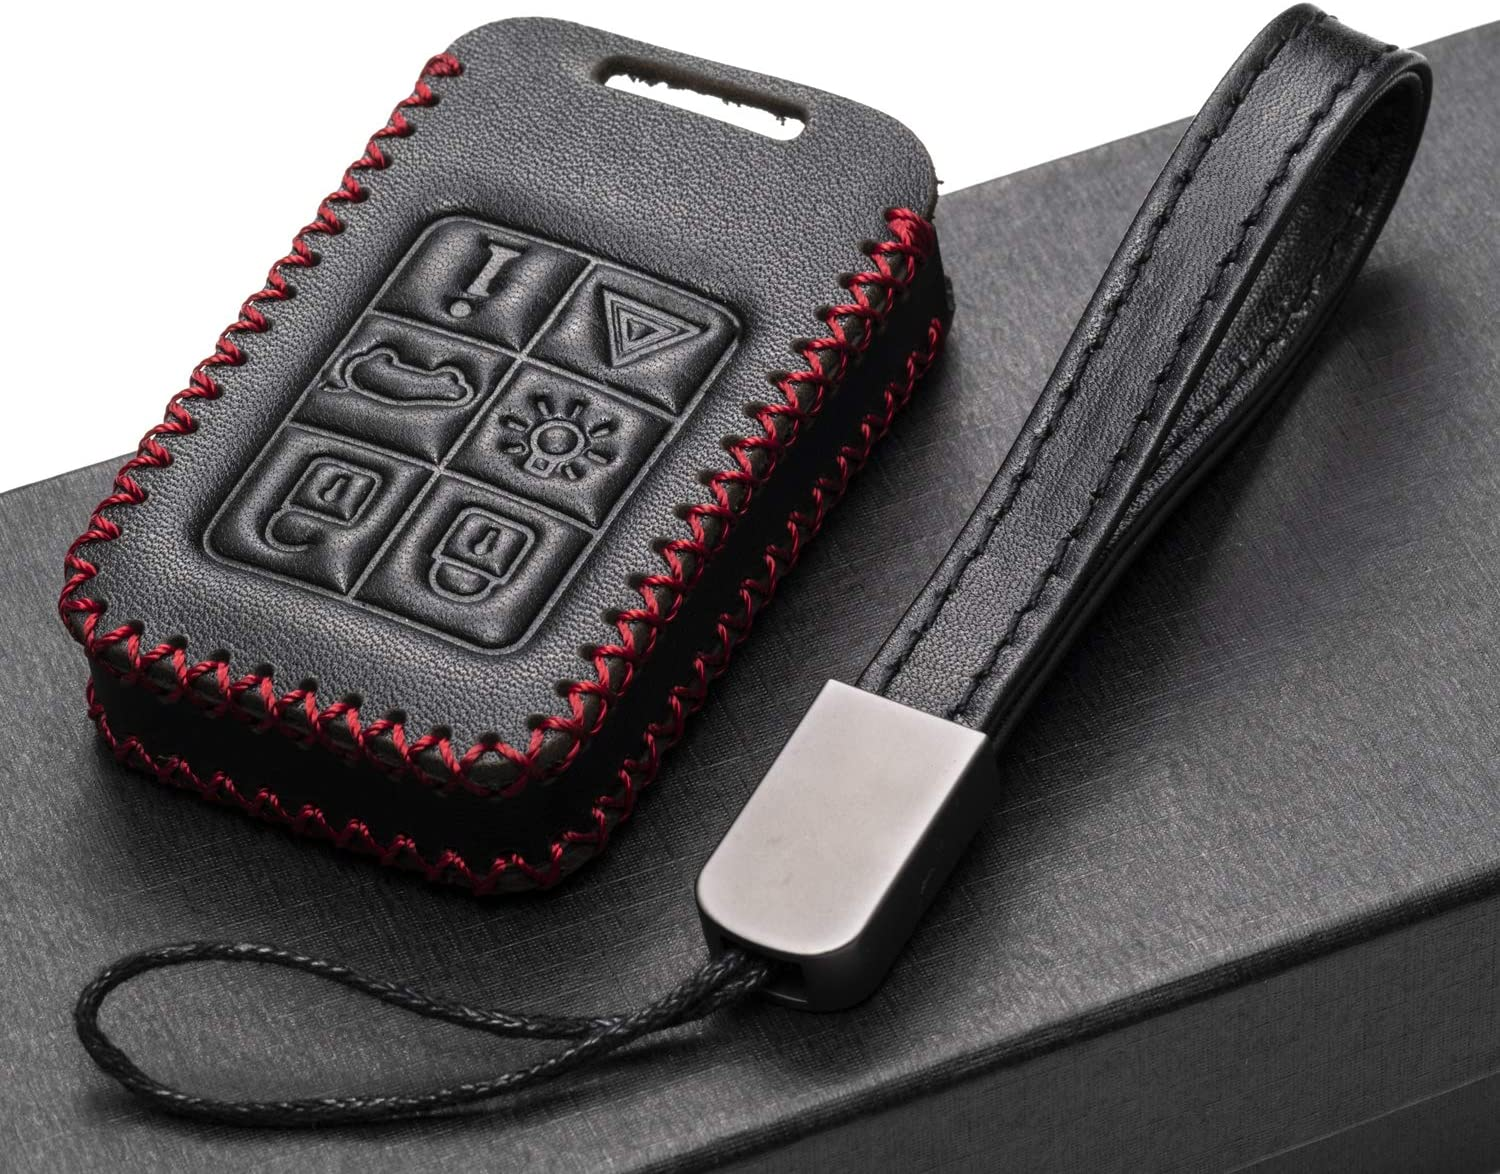 V70 Vitodeco Genuine Leather Smart Key Fob Case Cover Protector with Key Chain for Volvo S60 XC60 XC70 6-Button, Black S80